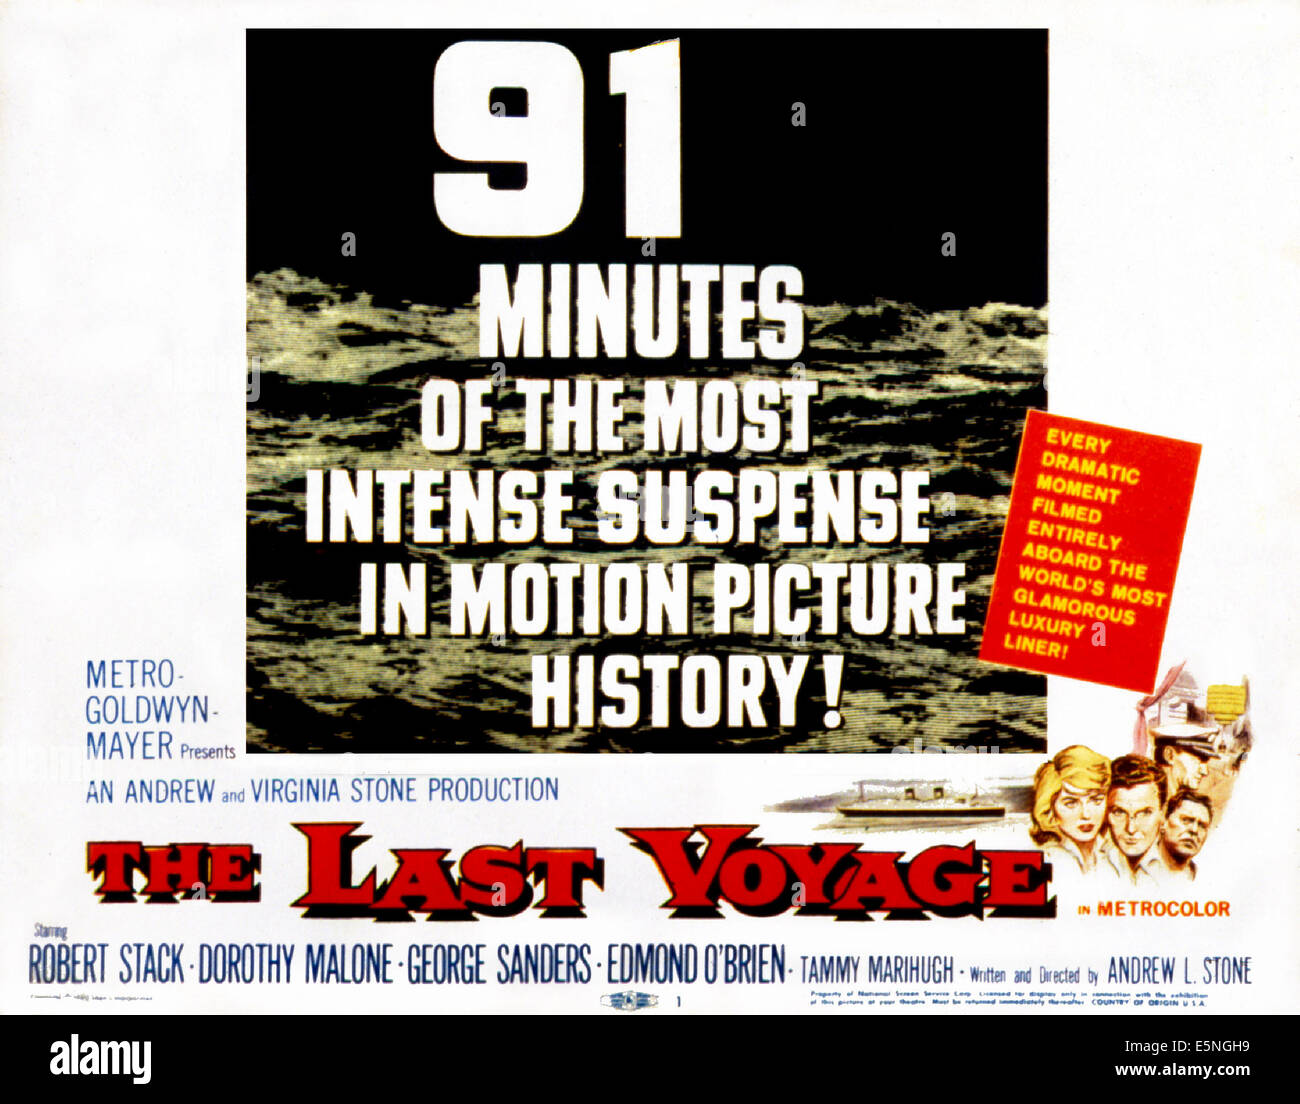 THE LAST VOYAGE, Poster Art, 1960 - Stock Image